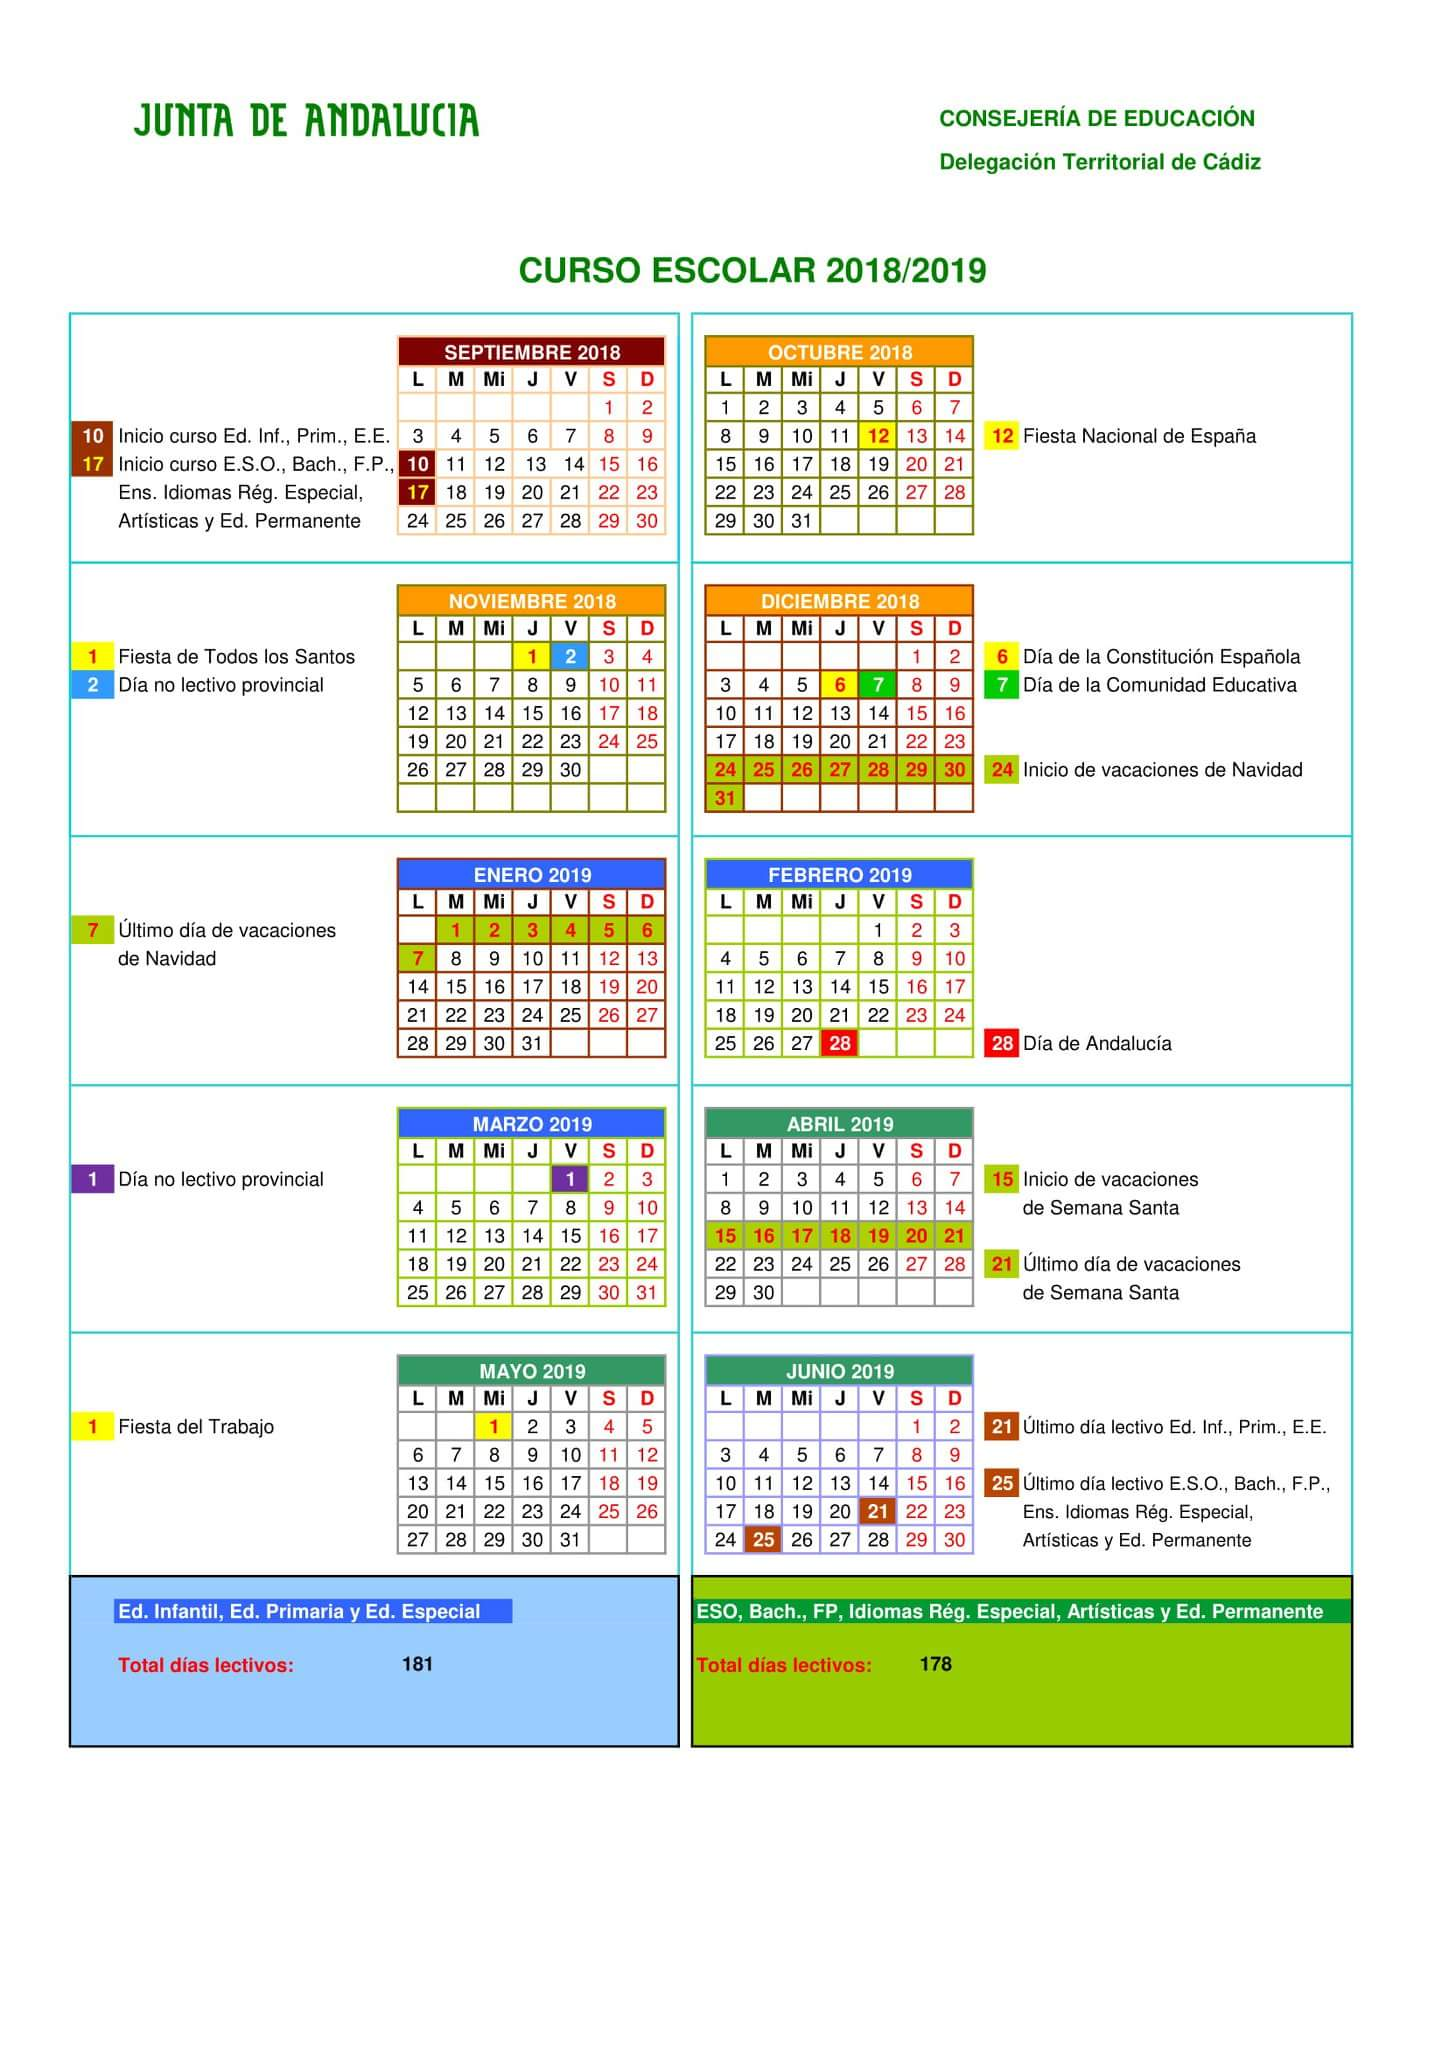 Calendario Escolar 2020 Cadiz.Calendario Escolar 2018 2019 Cadiz I E S Antonio Machado